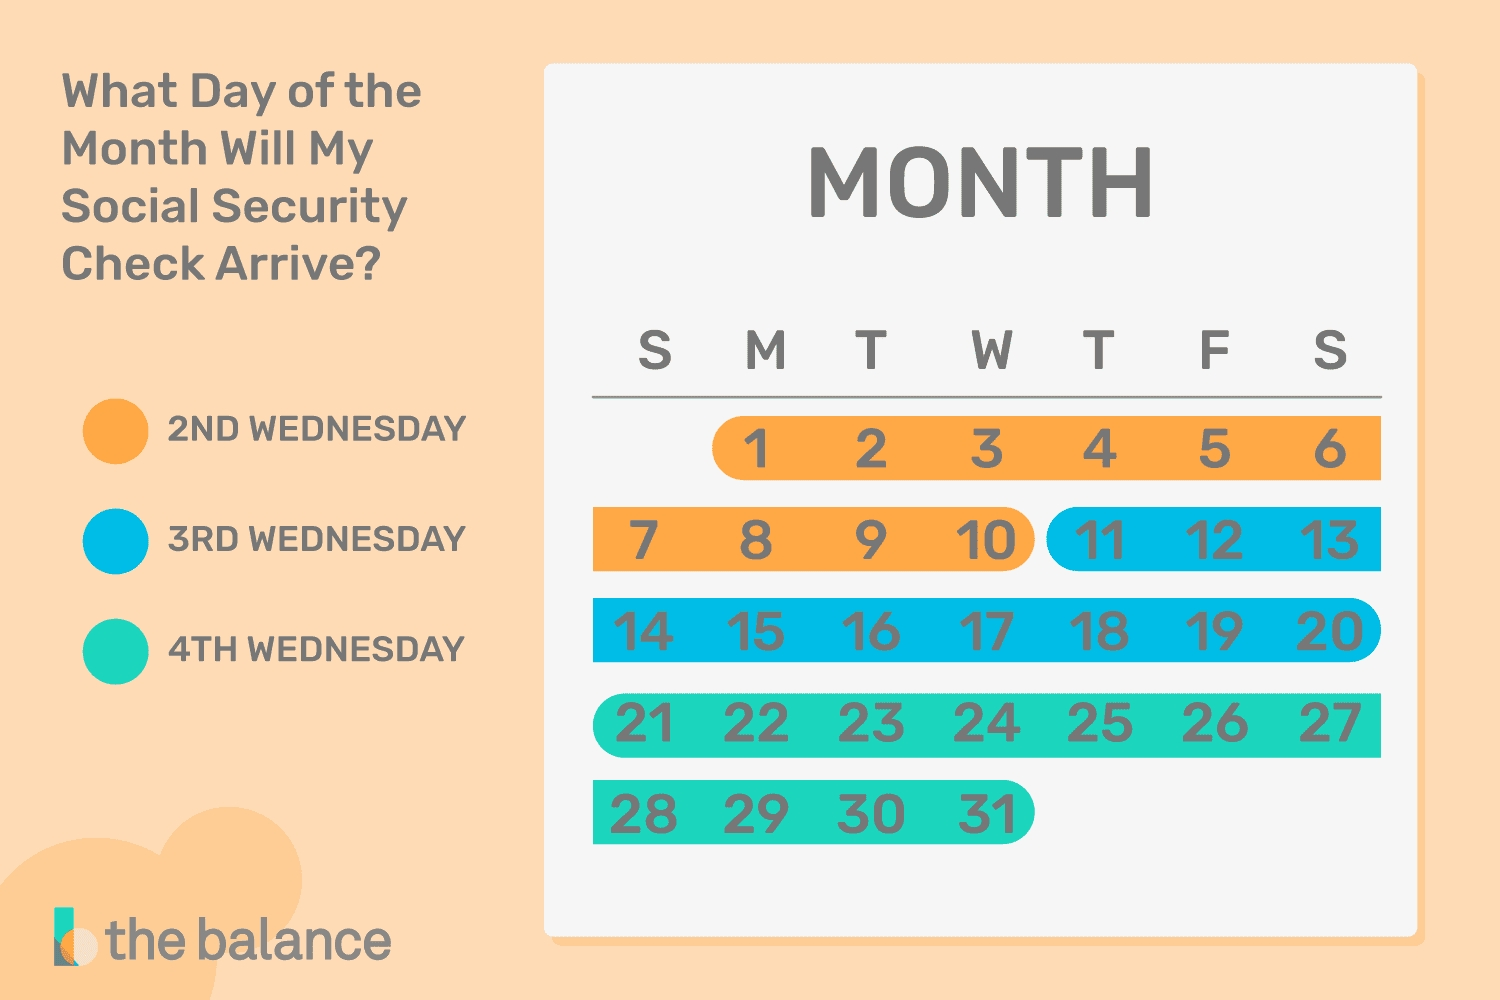 What Day Should My Social Security Payment Arrive?